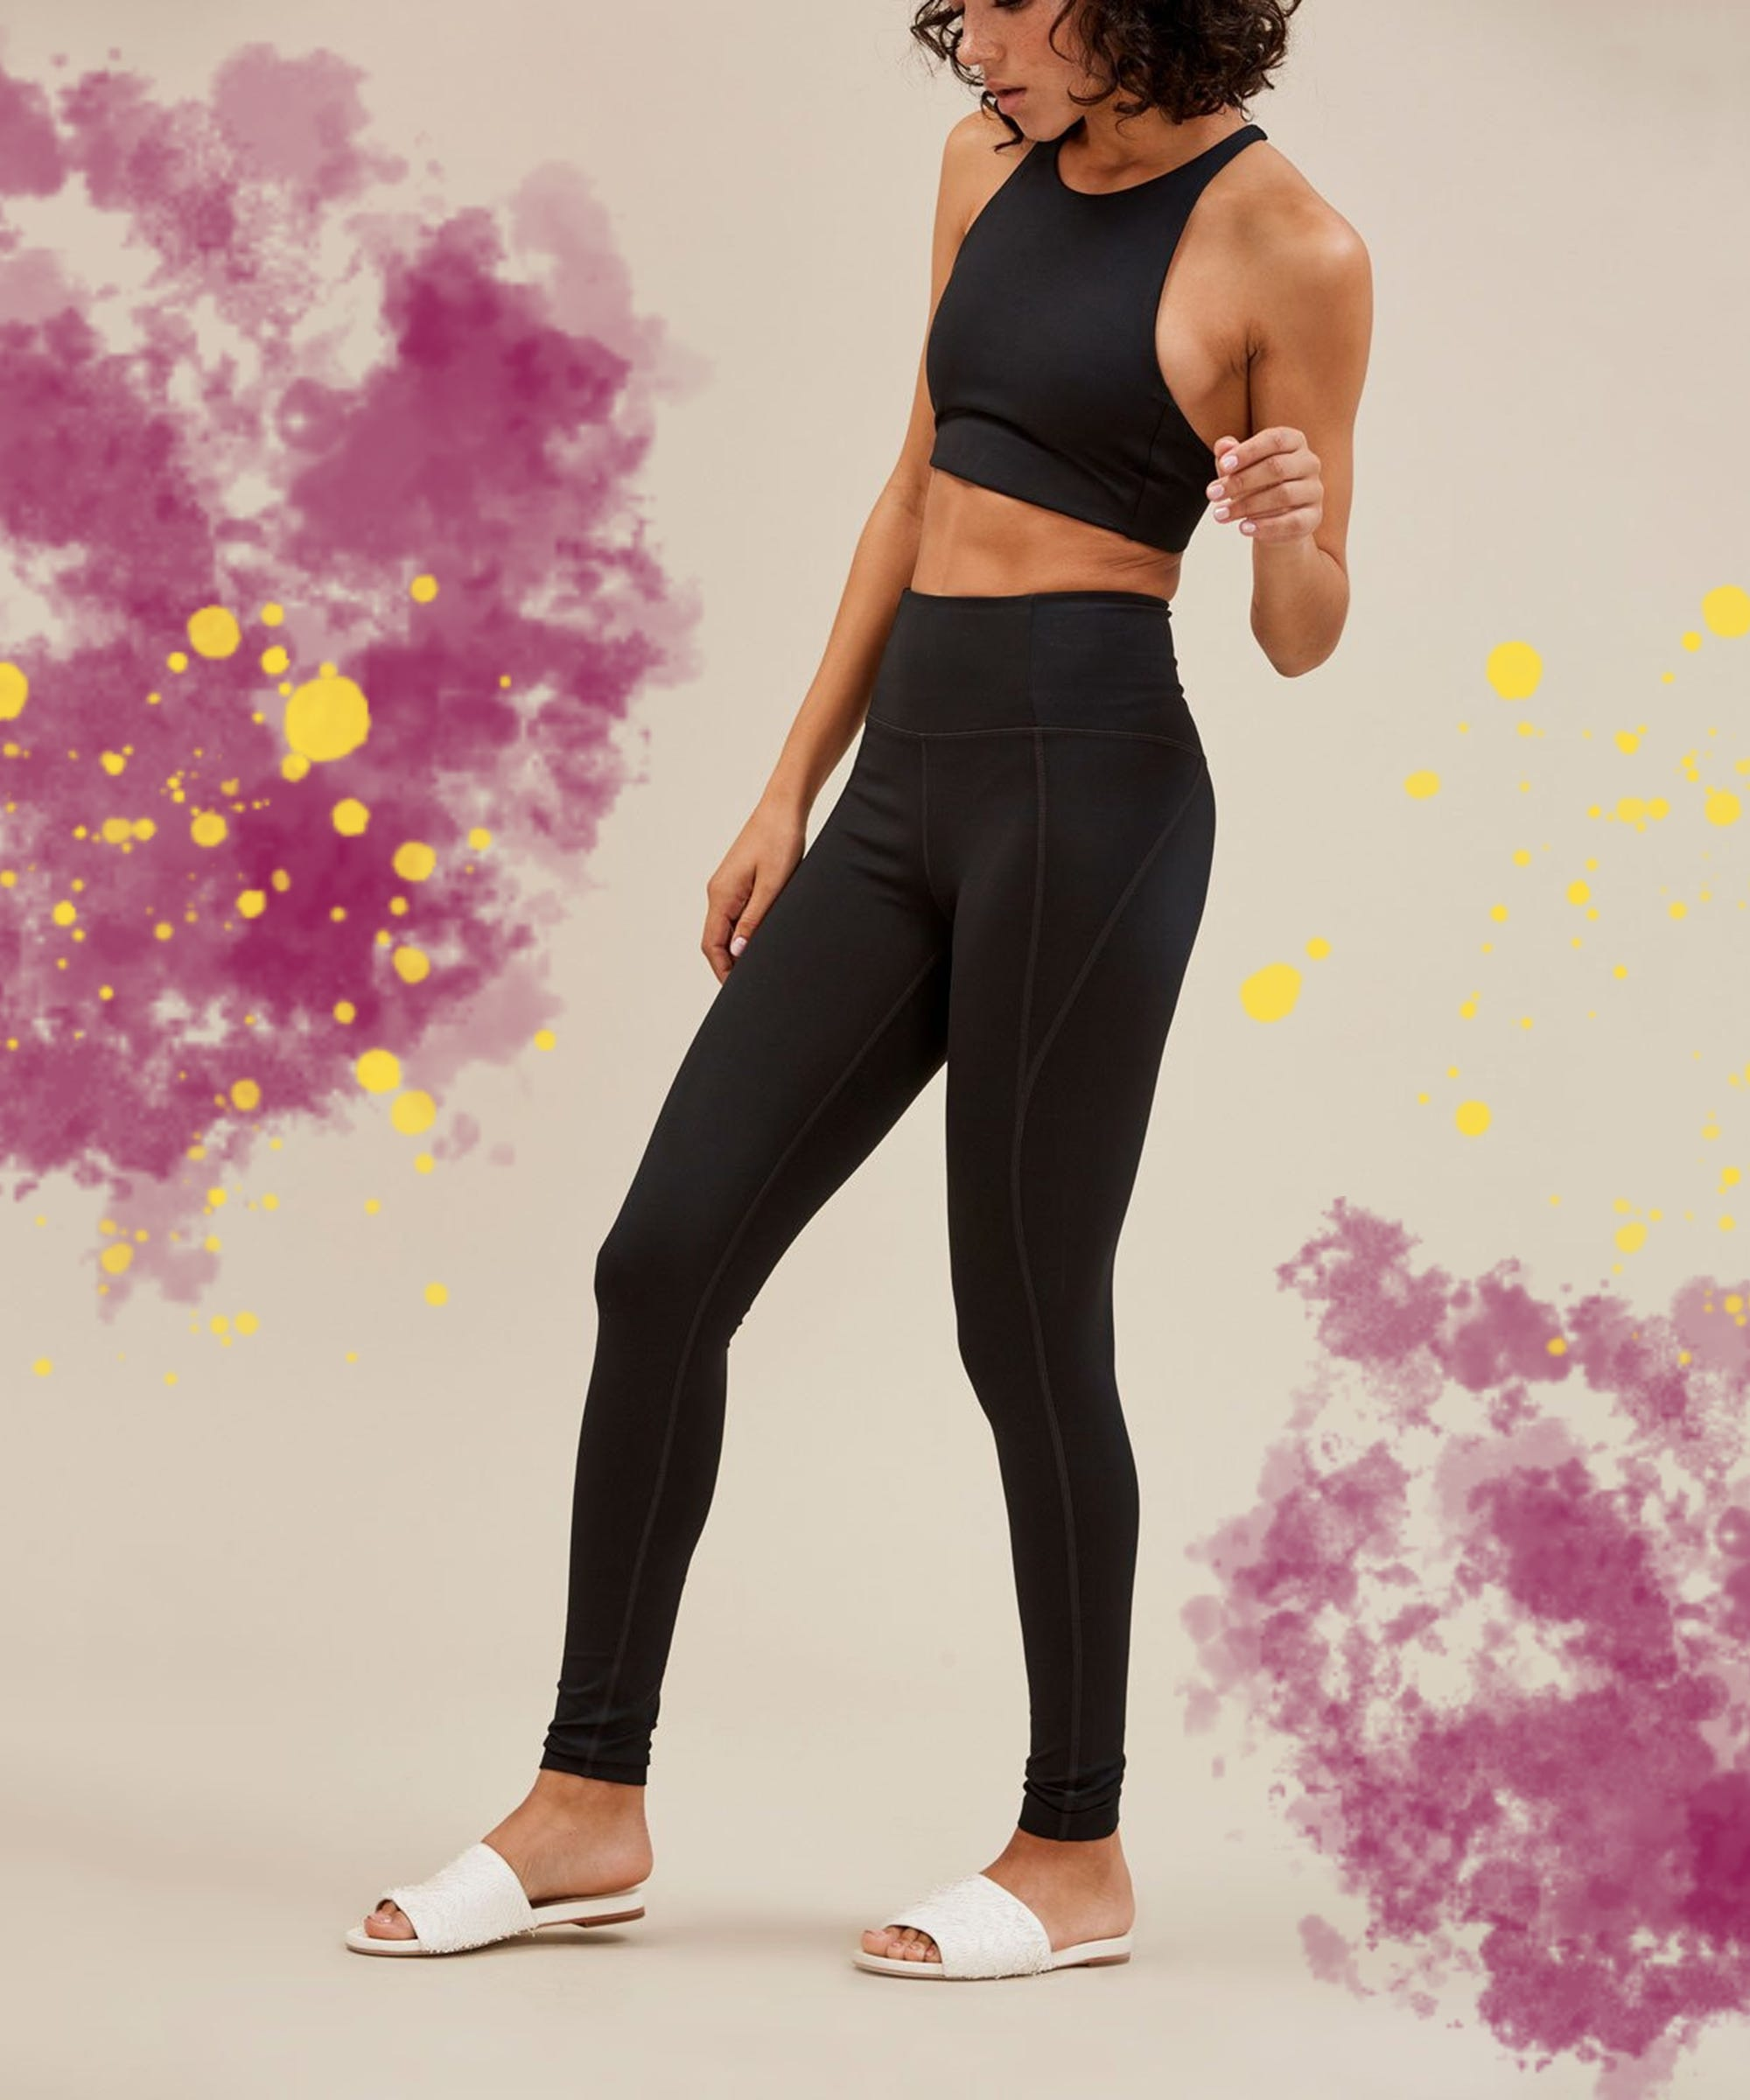 b094a49cb9 Best Black Leggings - Reviews On Top Brands & Styles